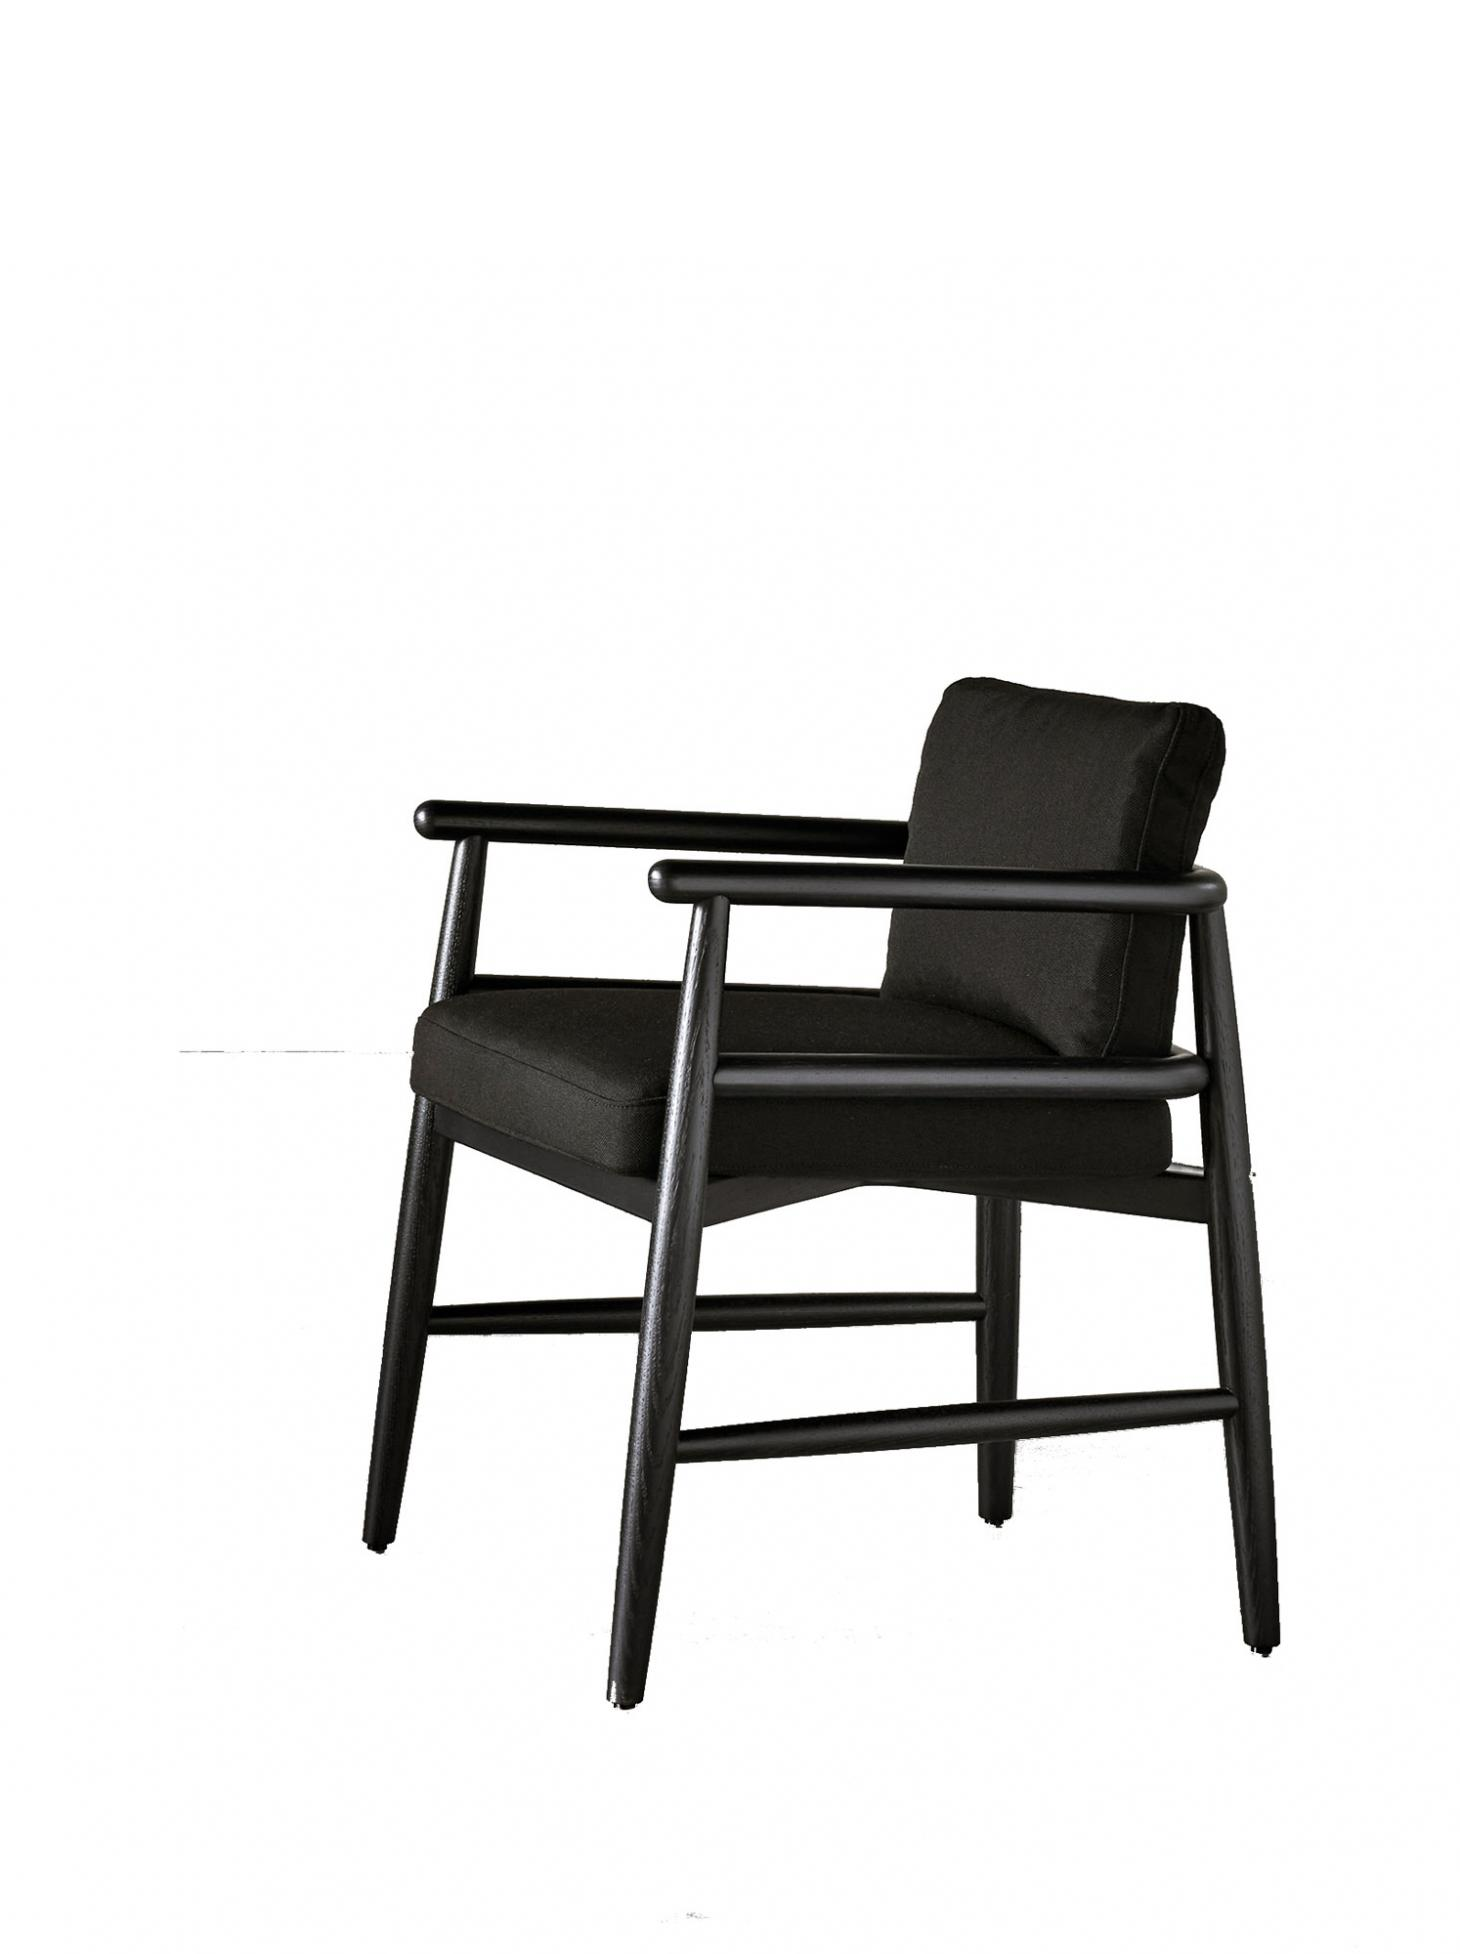 Black wooden dining chair with armrests and padded seat and back upholstered in black leather